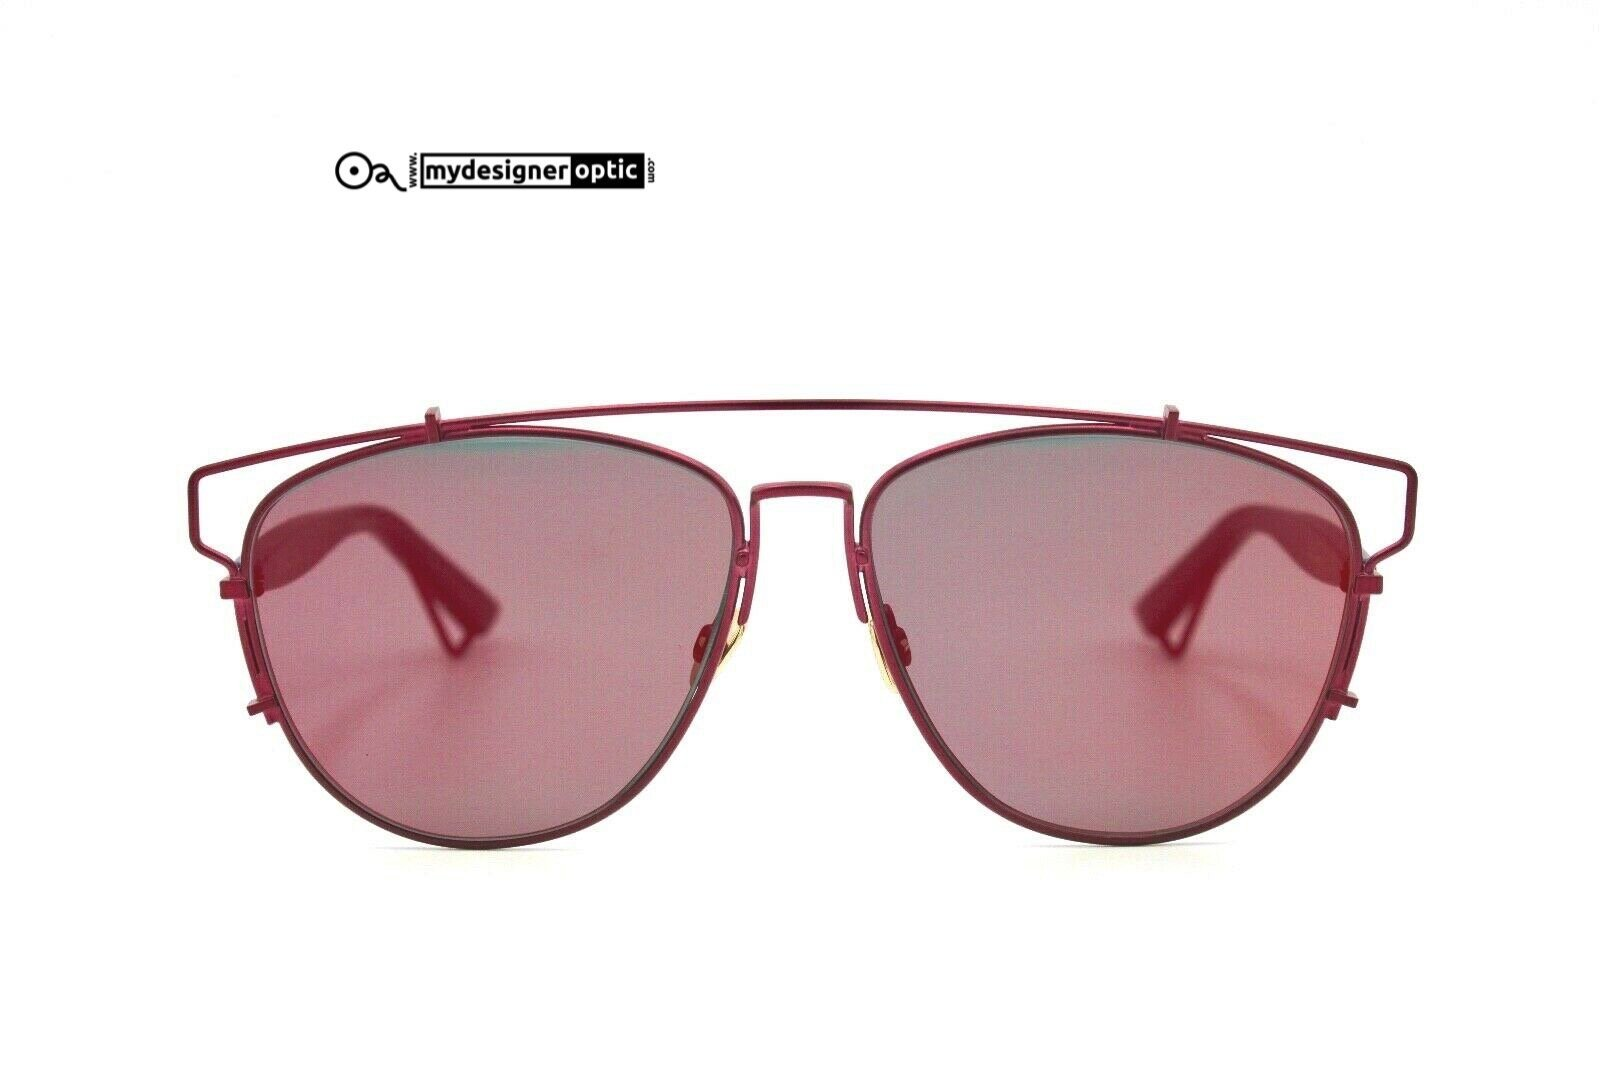 Dior Homme Sunglasses TVHMJ 57 14 145 Dior Technologie Made in Italy - Mydesigneroptic